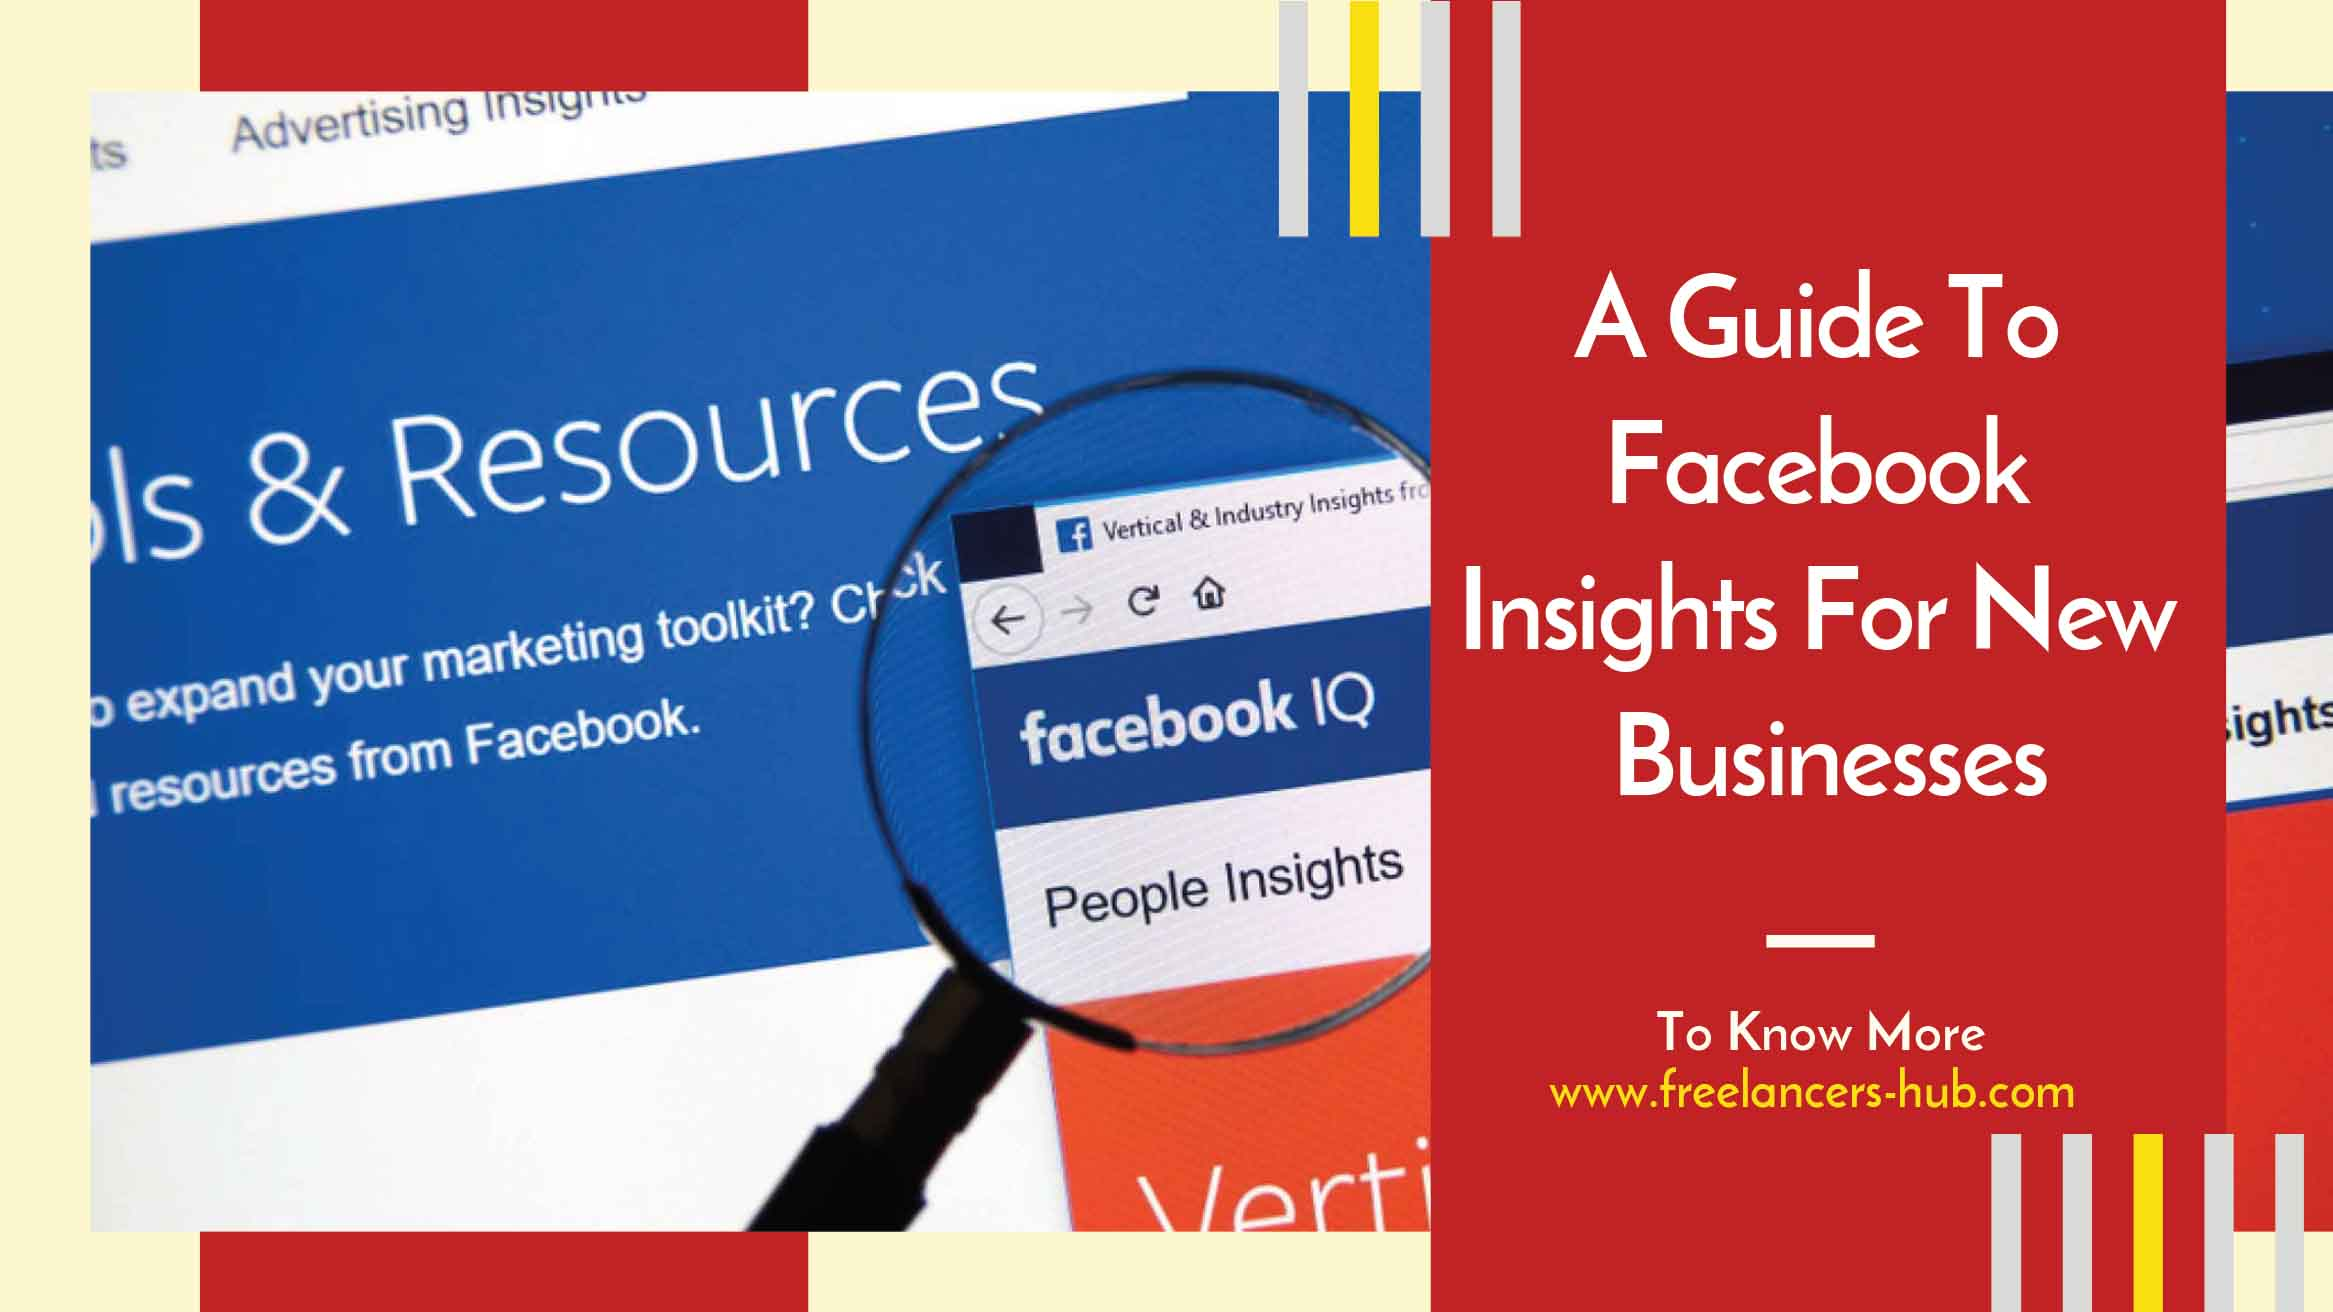 A Guide To Facebook Insights by Freelancers Hub